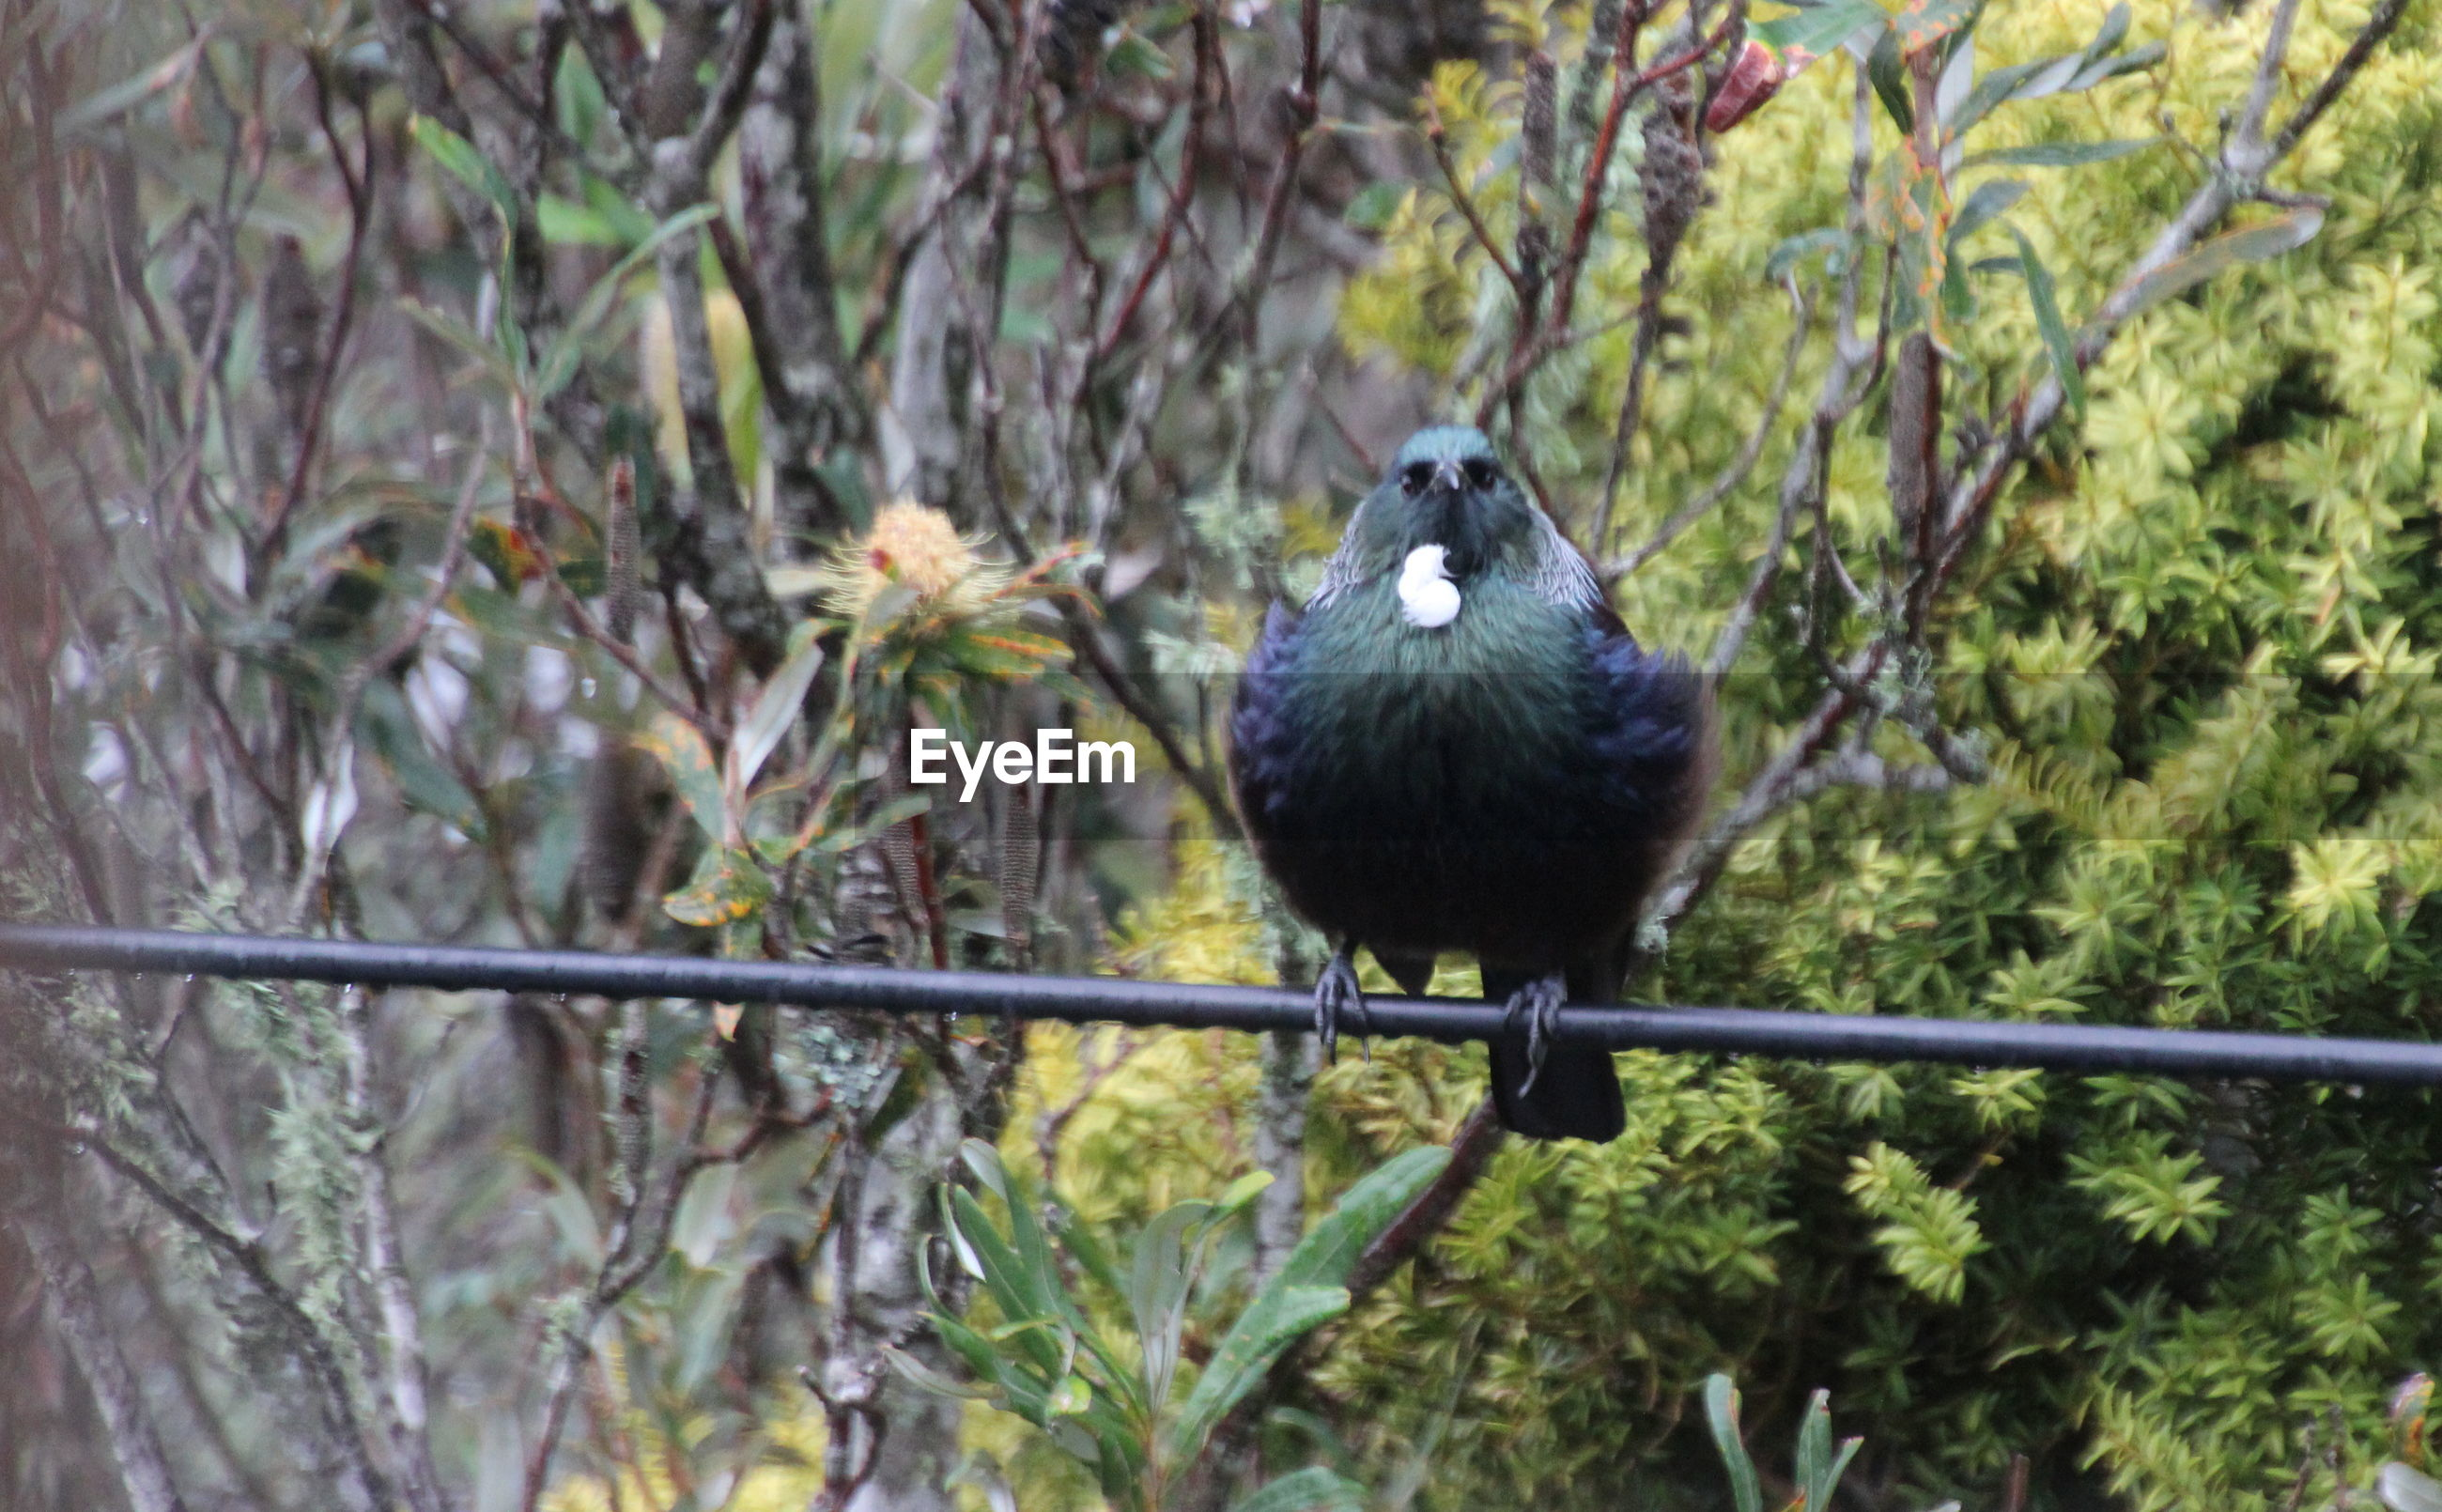 Portrait of tui bird perching on cable against plant